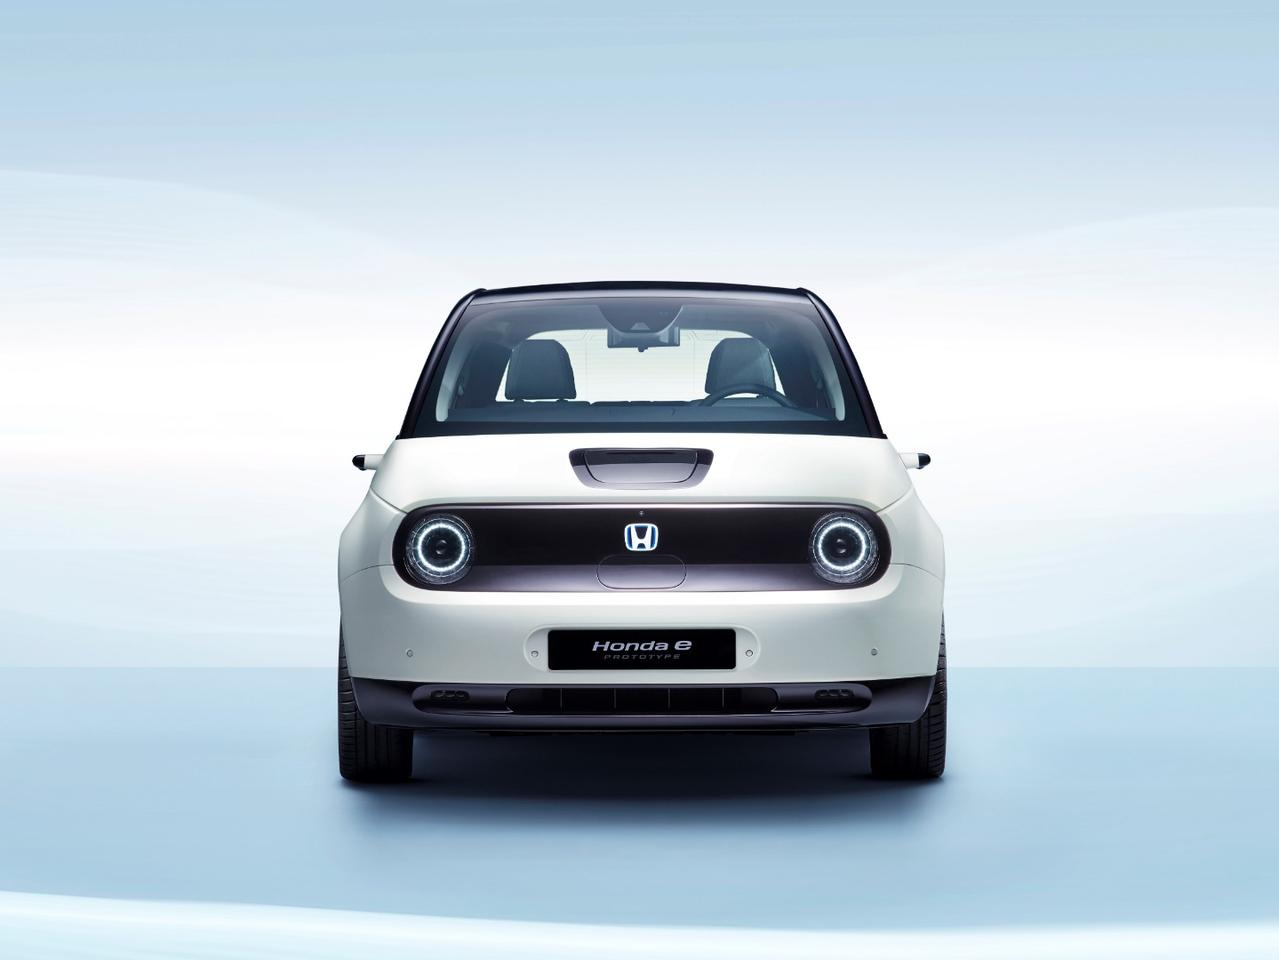 When Honda unveiled the Honda e prototype earlier this year, opening the electric car for reservations, a crowd showed up to plunk down their intentions to buy